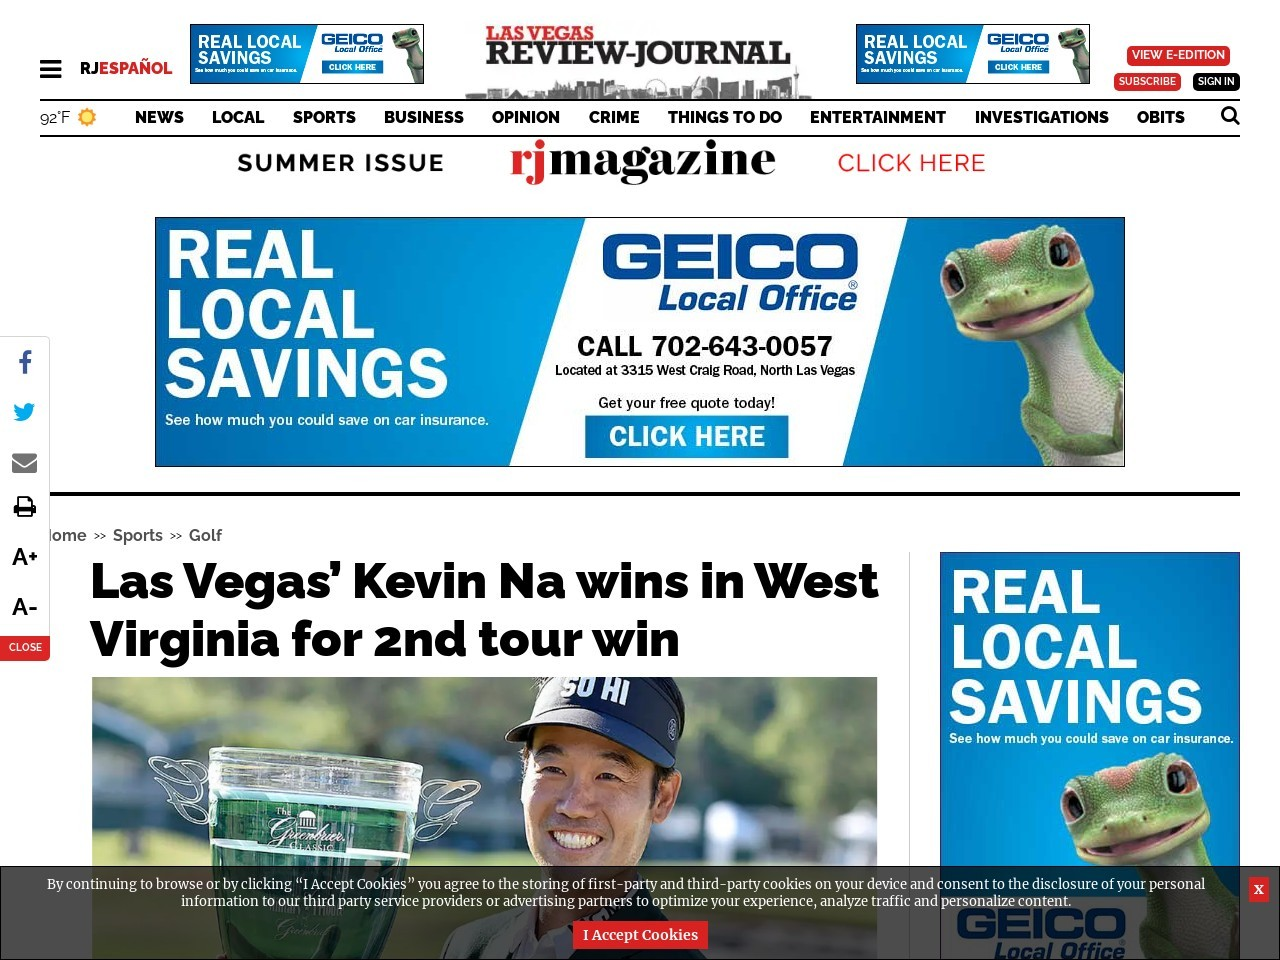 Las Vegas' Kevin Na wins in West Virginia for 2nd tour win